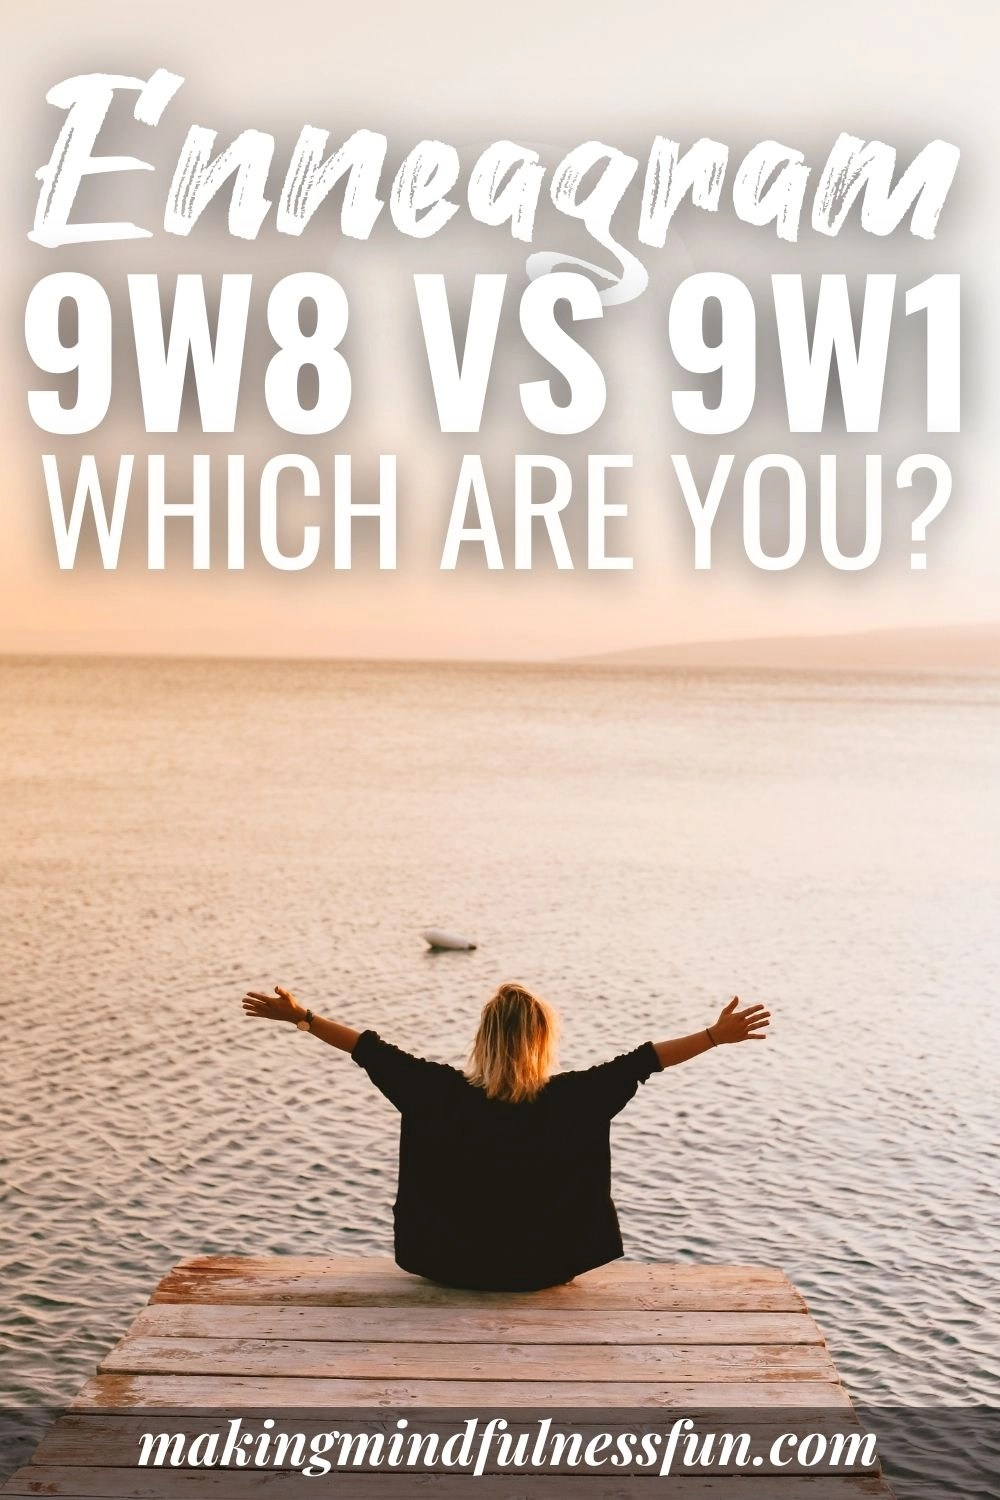 Enneagram 9w8 vs 9w1 which are you 1